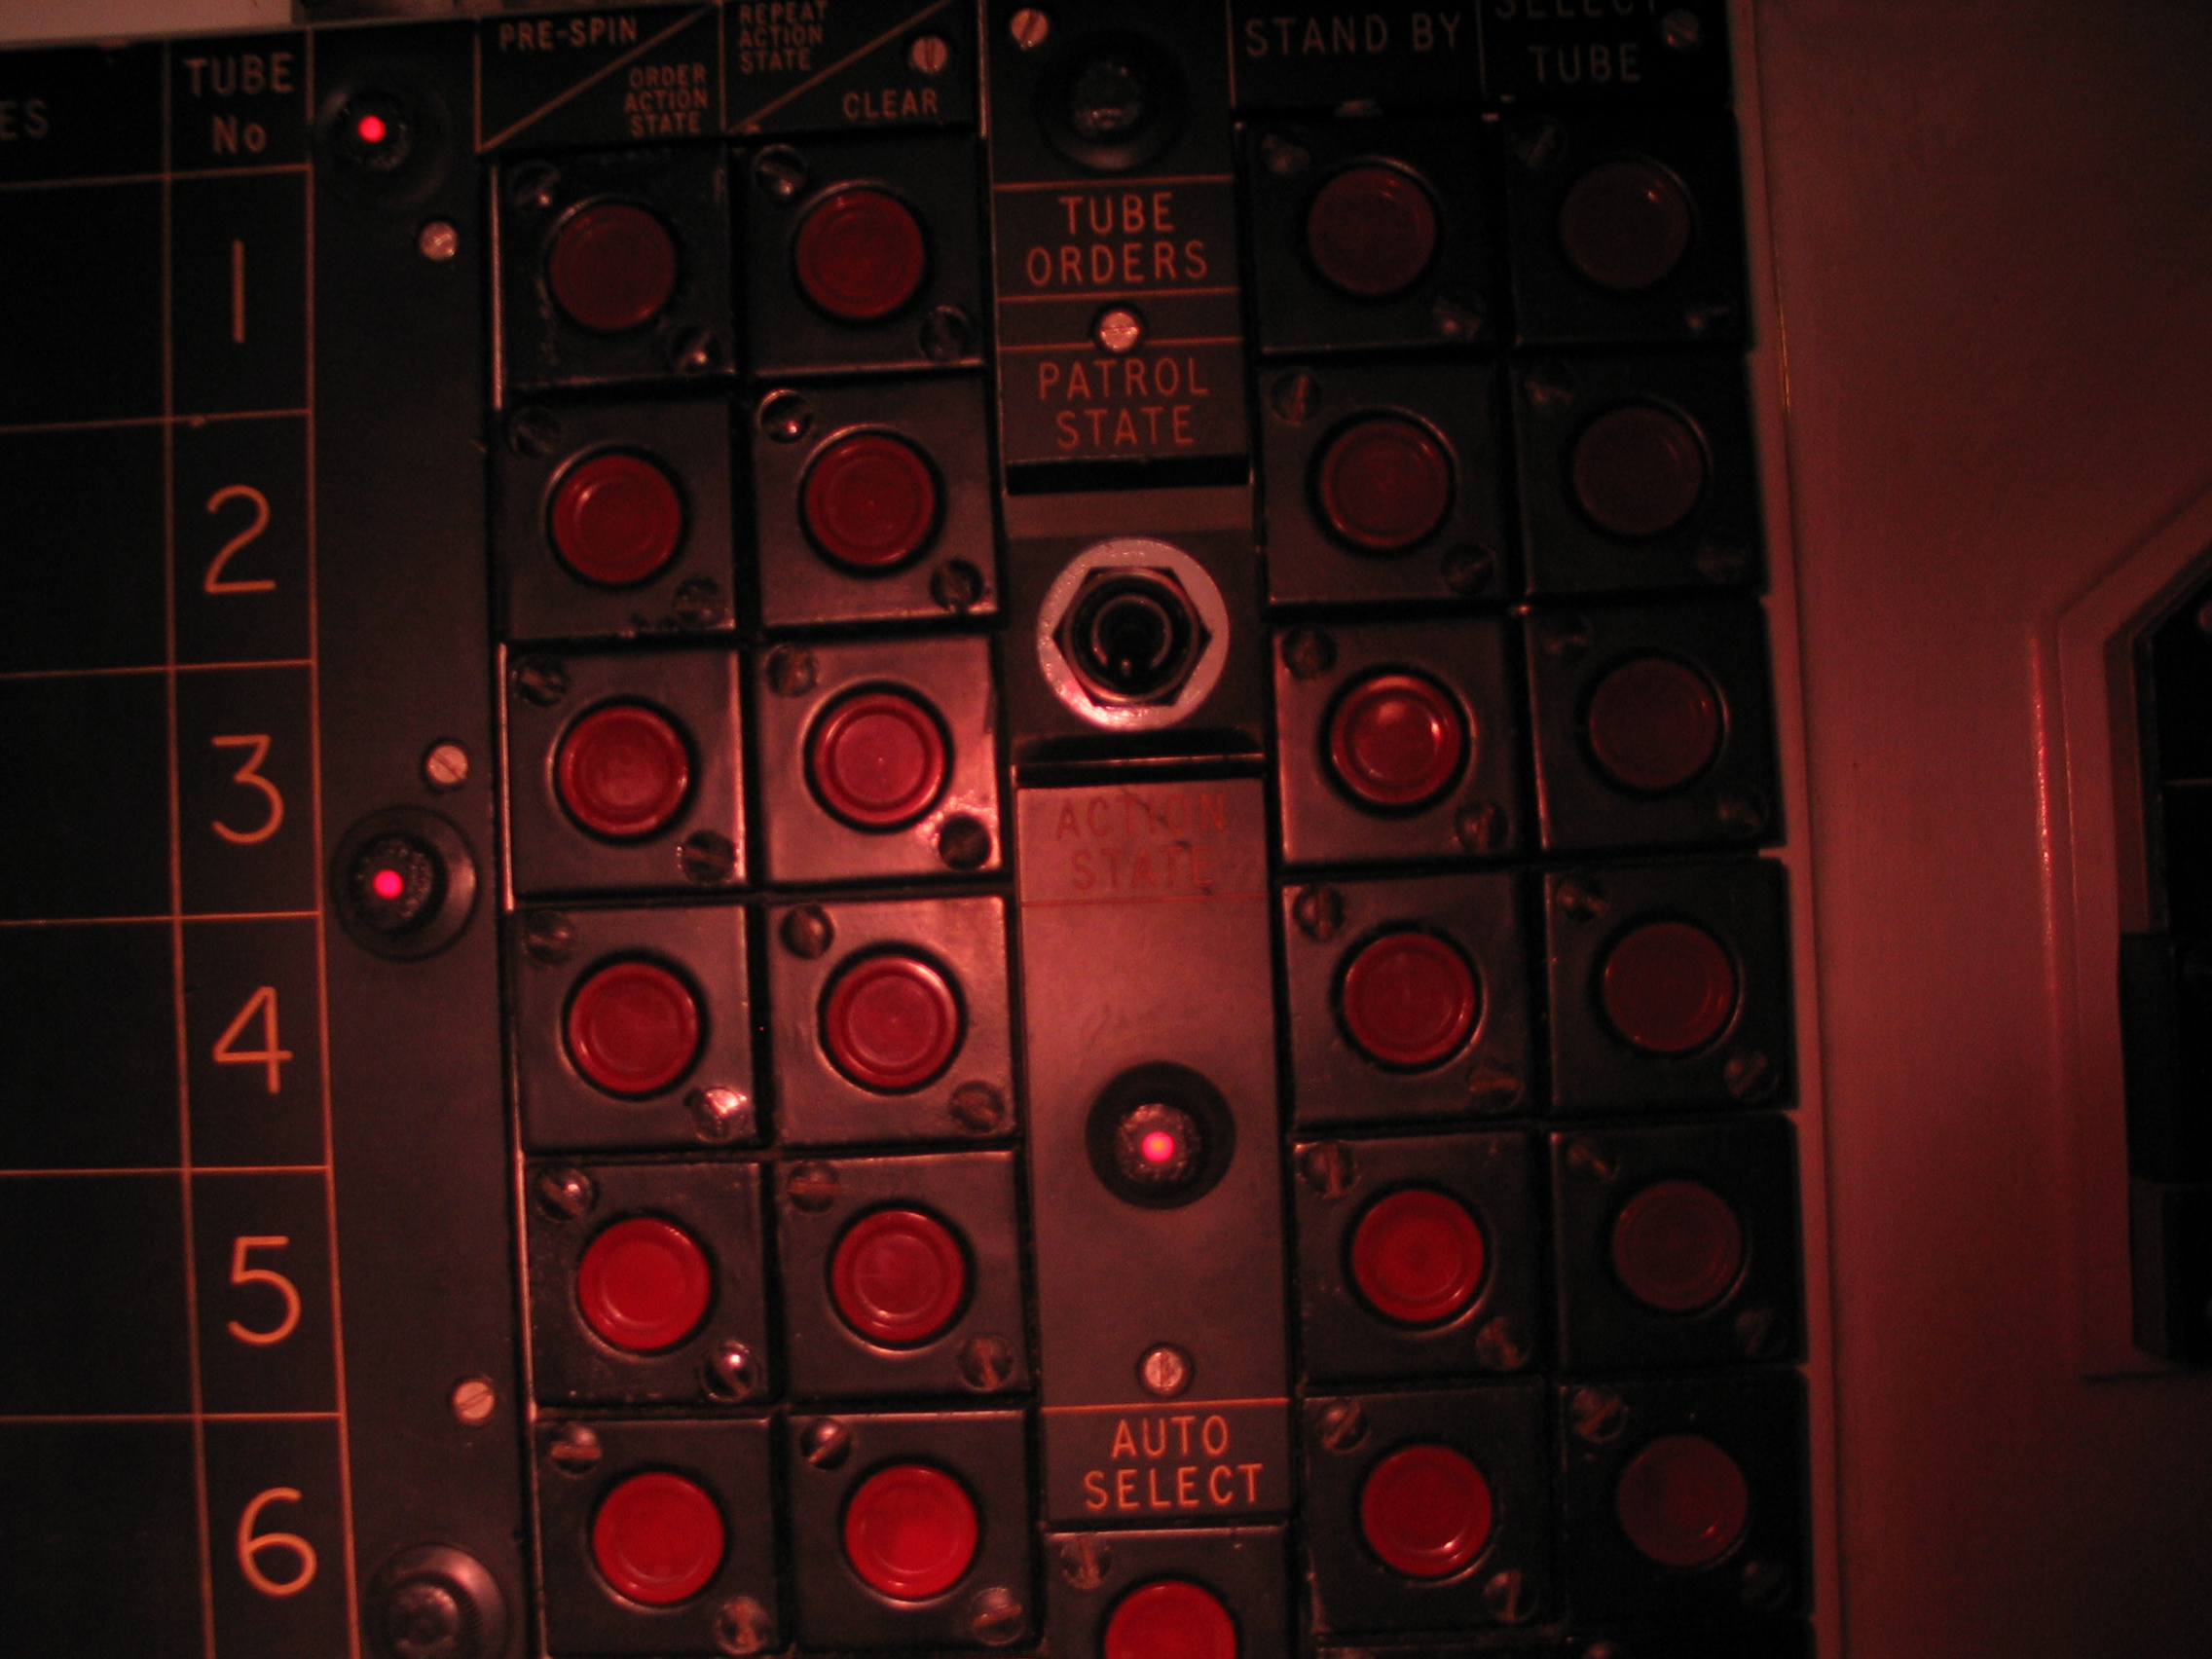 iain tube control panel button buttons red auto select